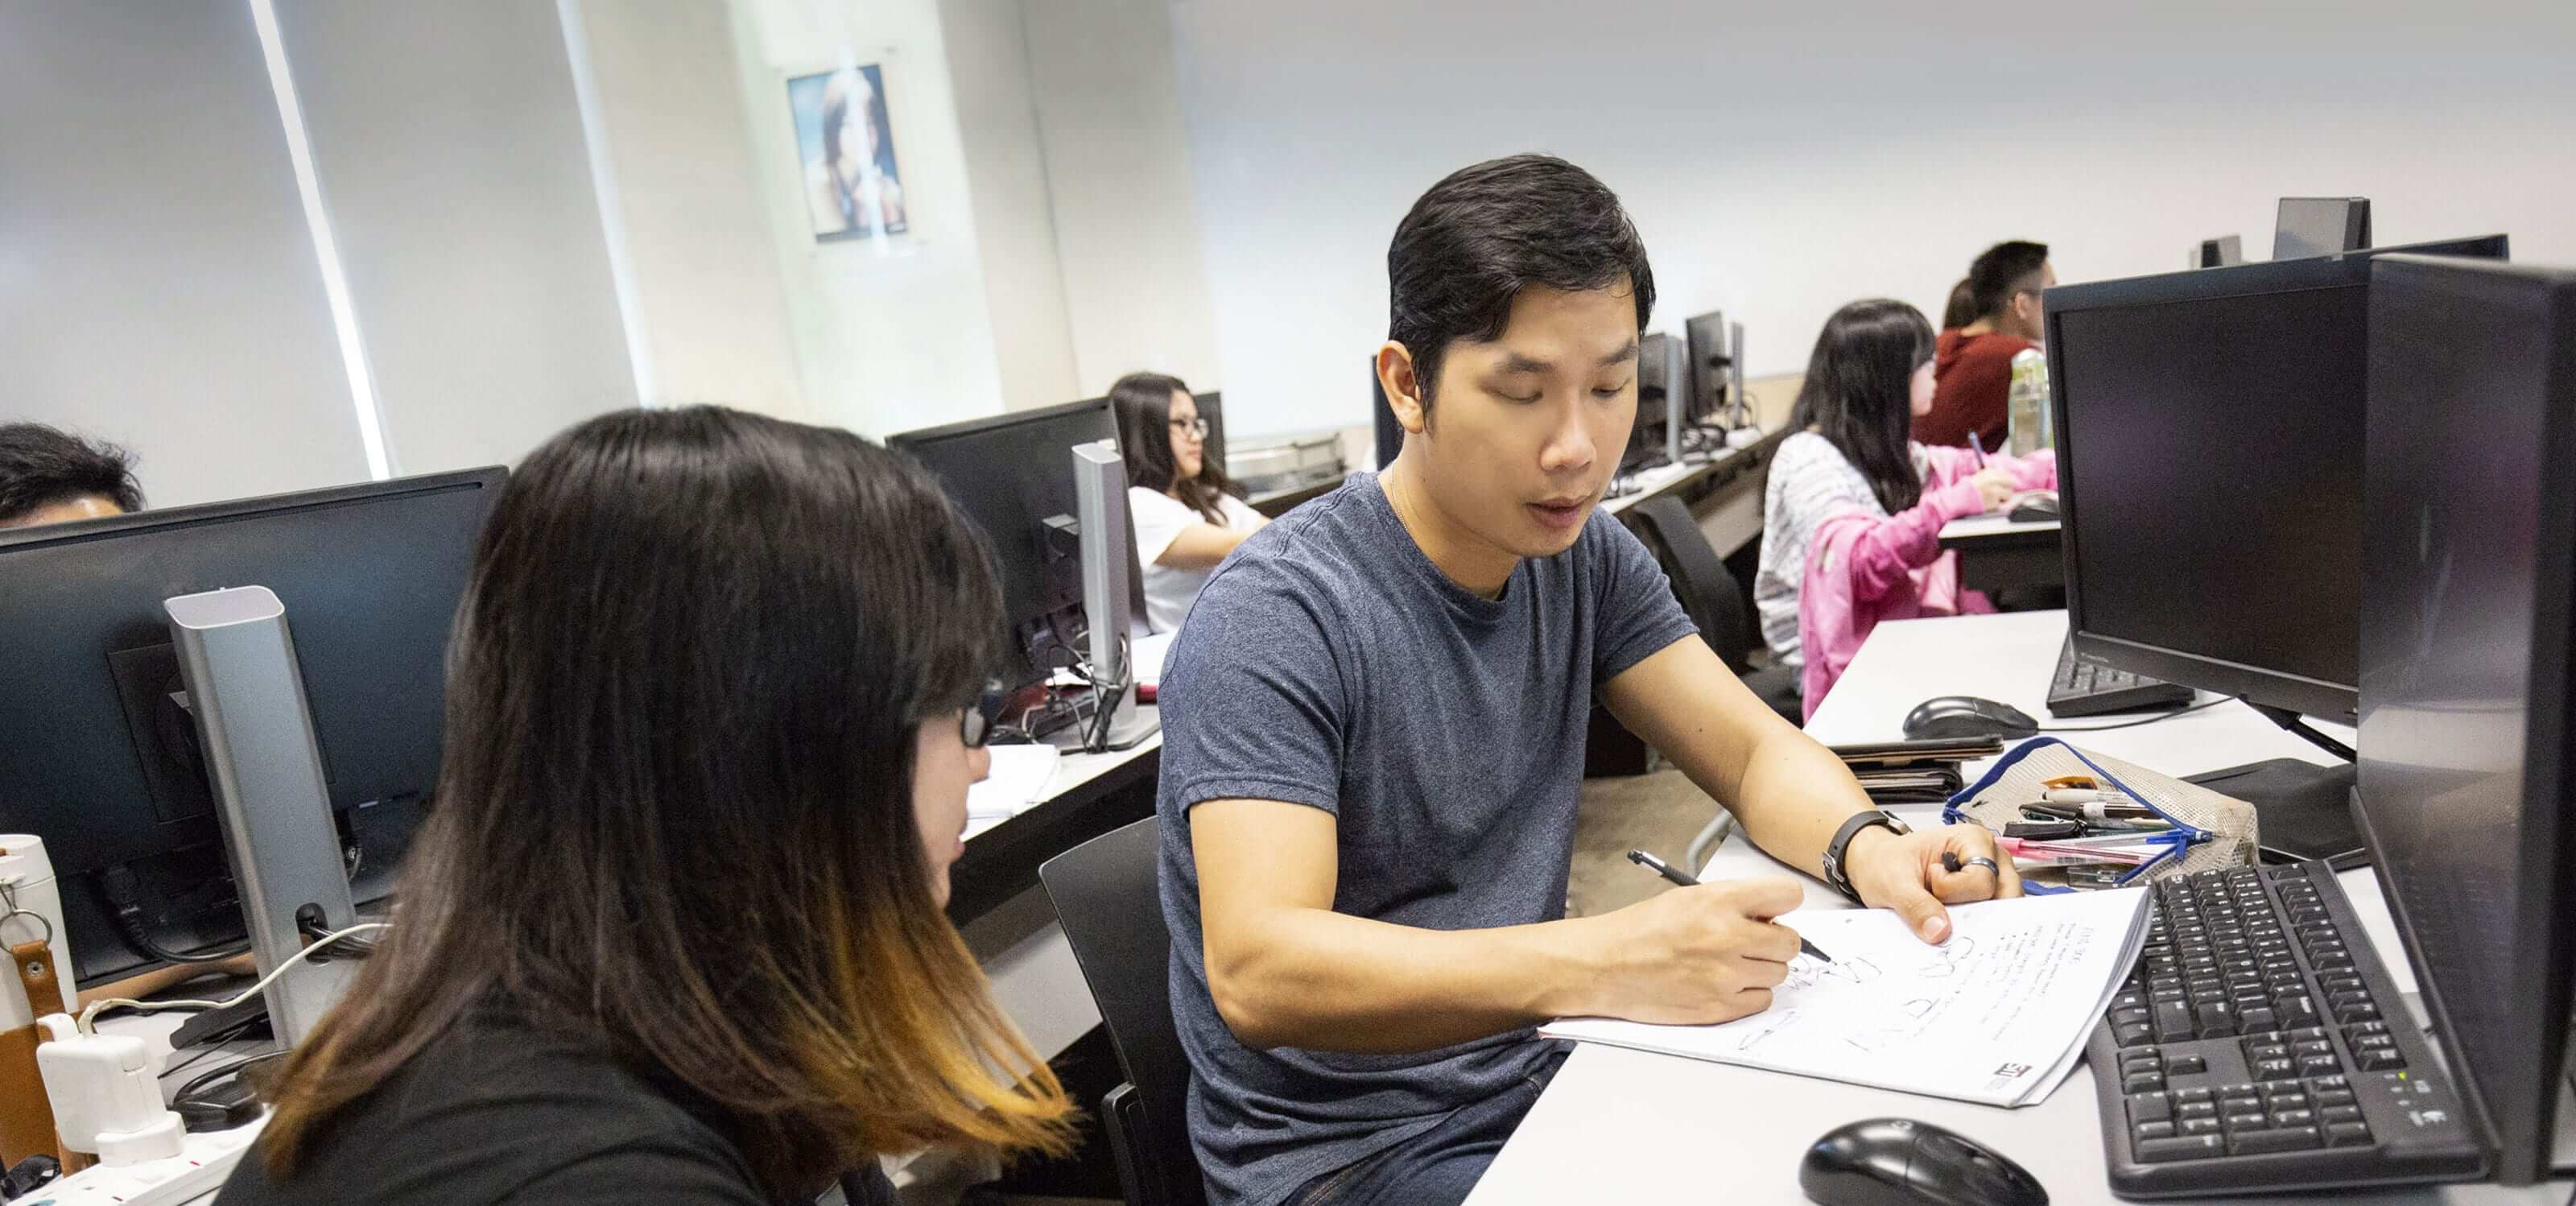 Two DigiPen (Singapore) students working together in a classroom